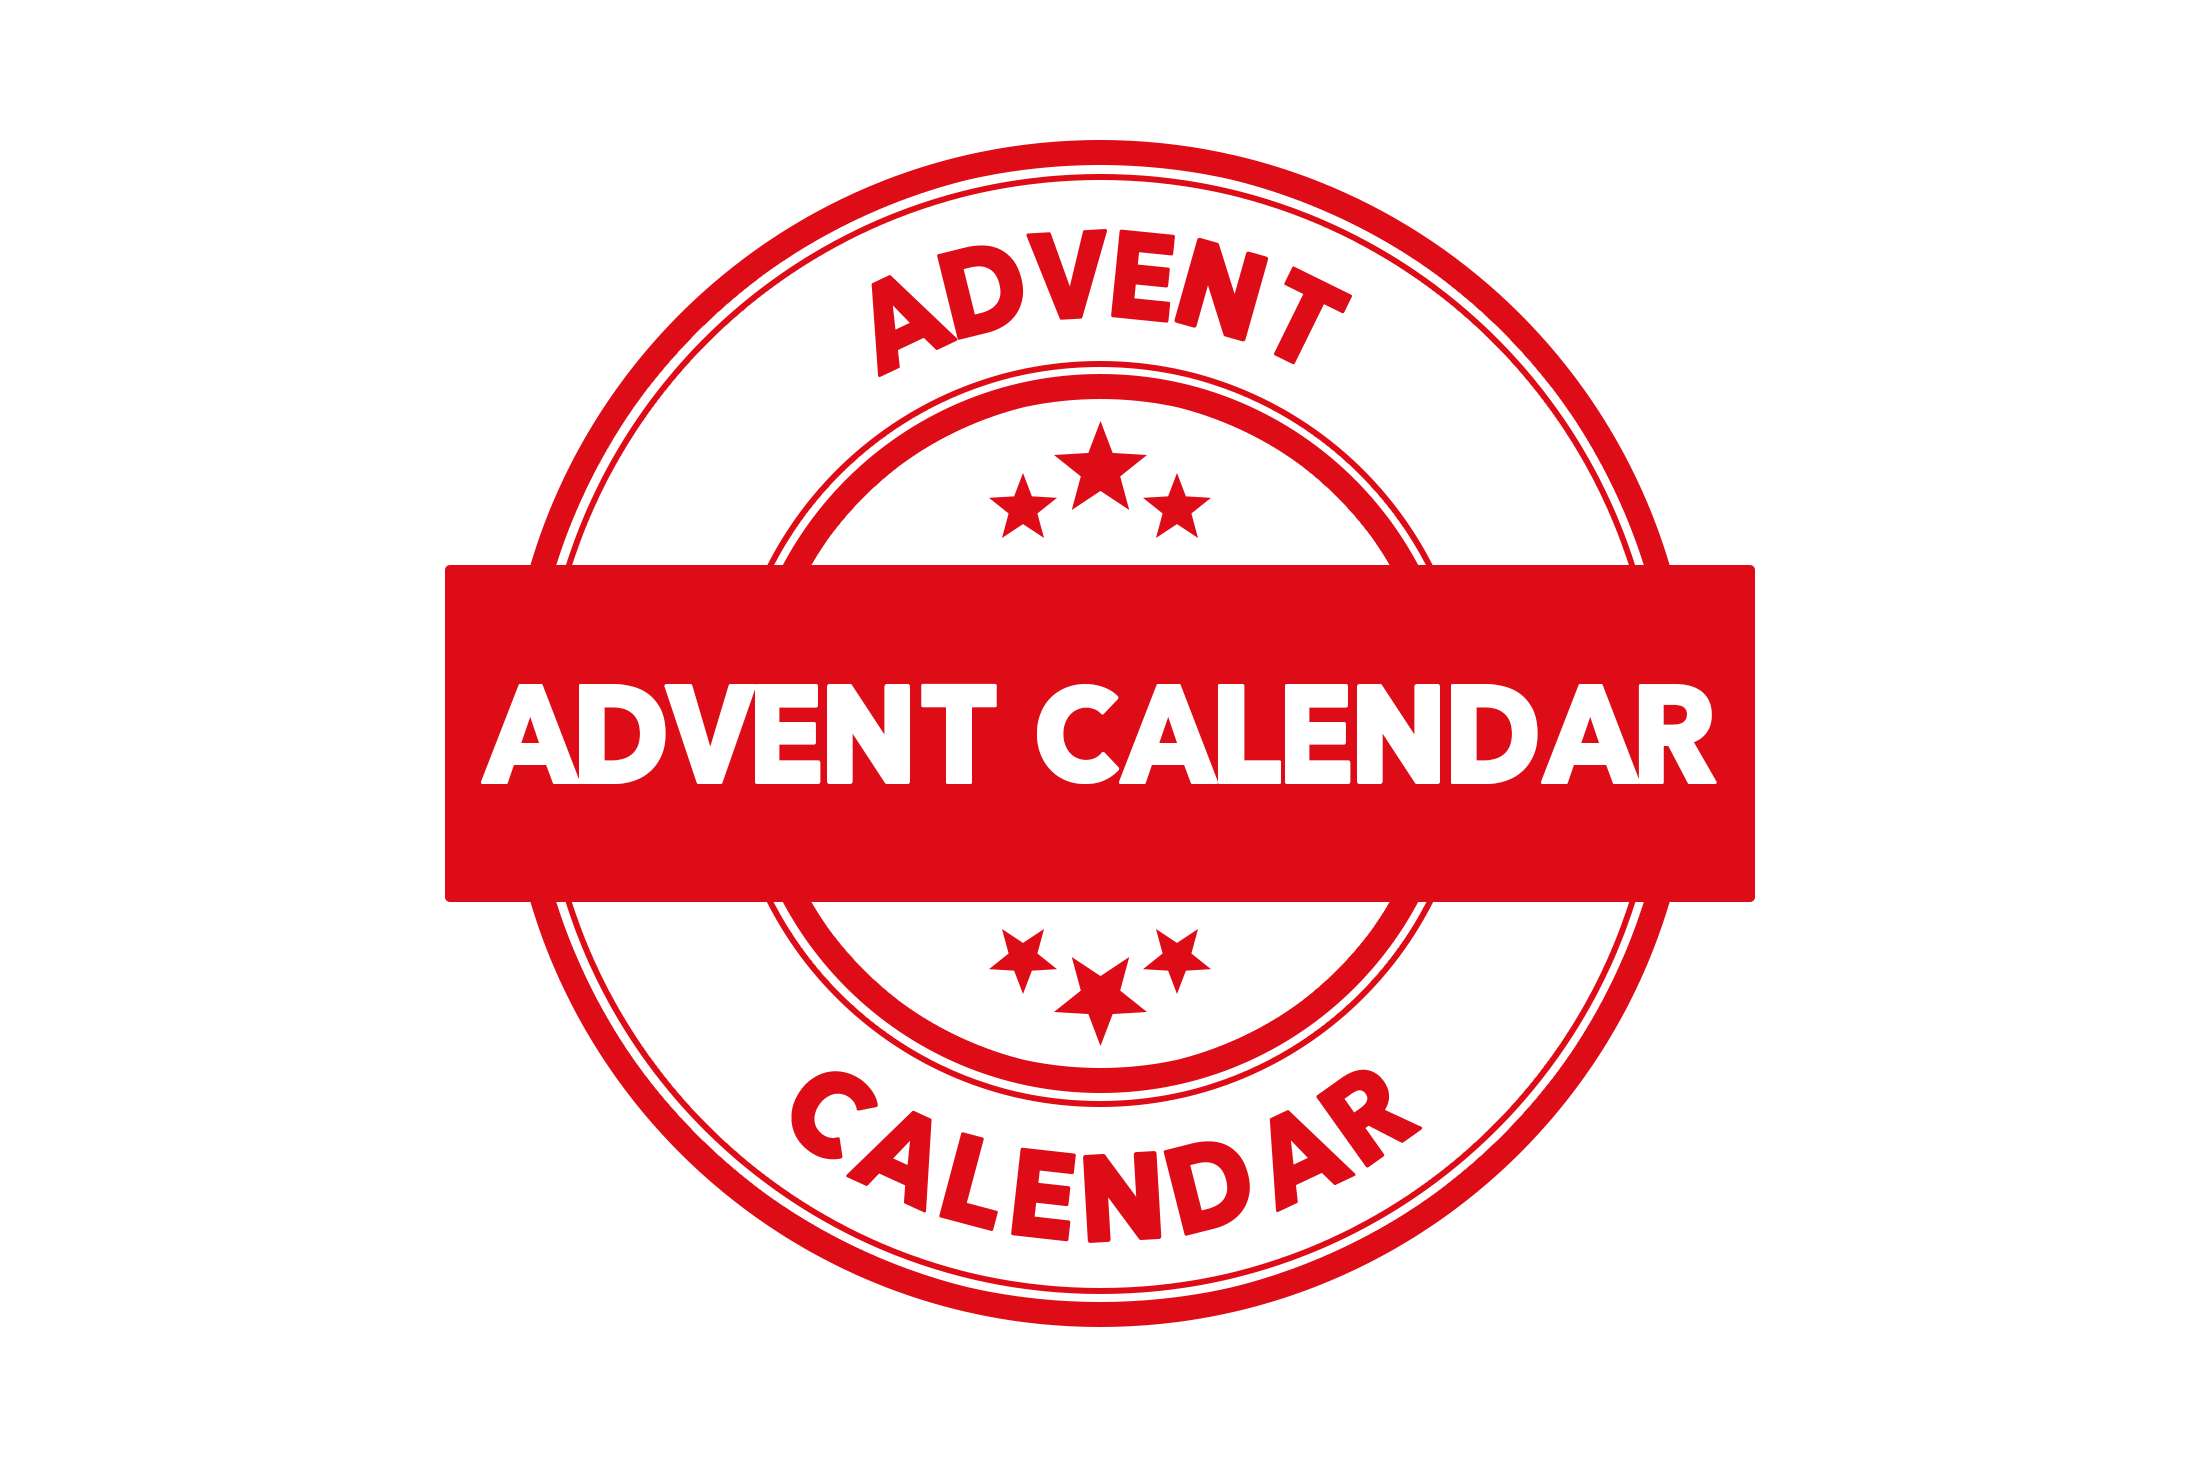 Round advent calendar stamp PSD